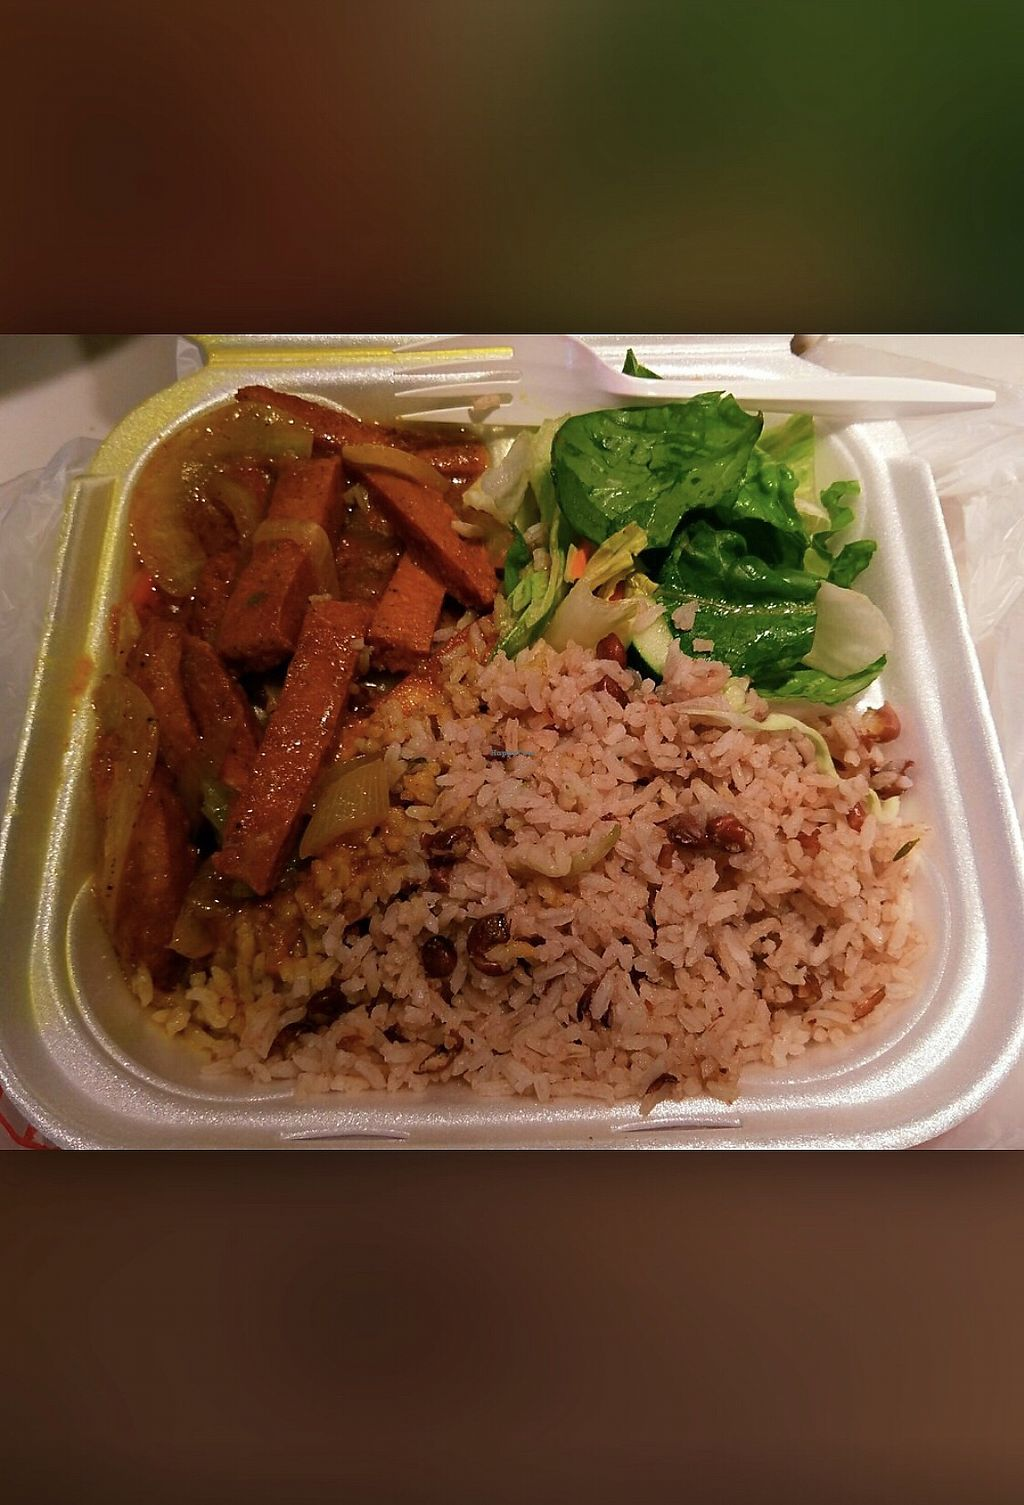 "Photo of Coconutz Fusion Cafe  by <a href=""/members/profile/AlexGibson"">AlexGibson</a> <br/>Vegan curry ""chicken"" coconut rice and peas and salad. Amazing! <br/> January 29, 2018  - <a href='/contact/abuse/image/109874/352420'>Report</a>"